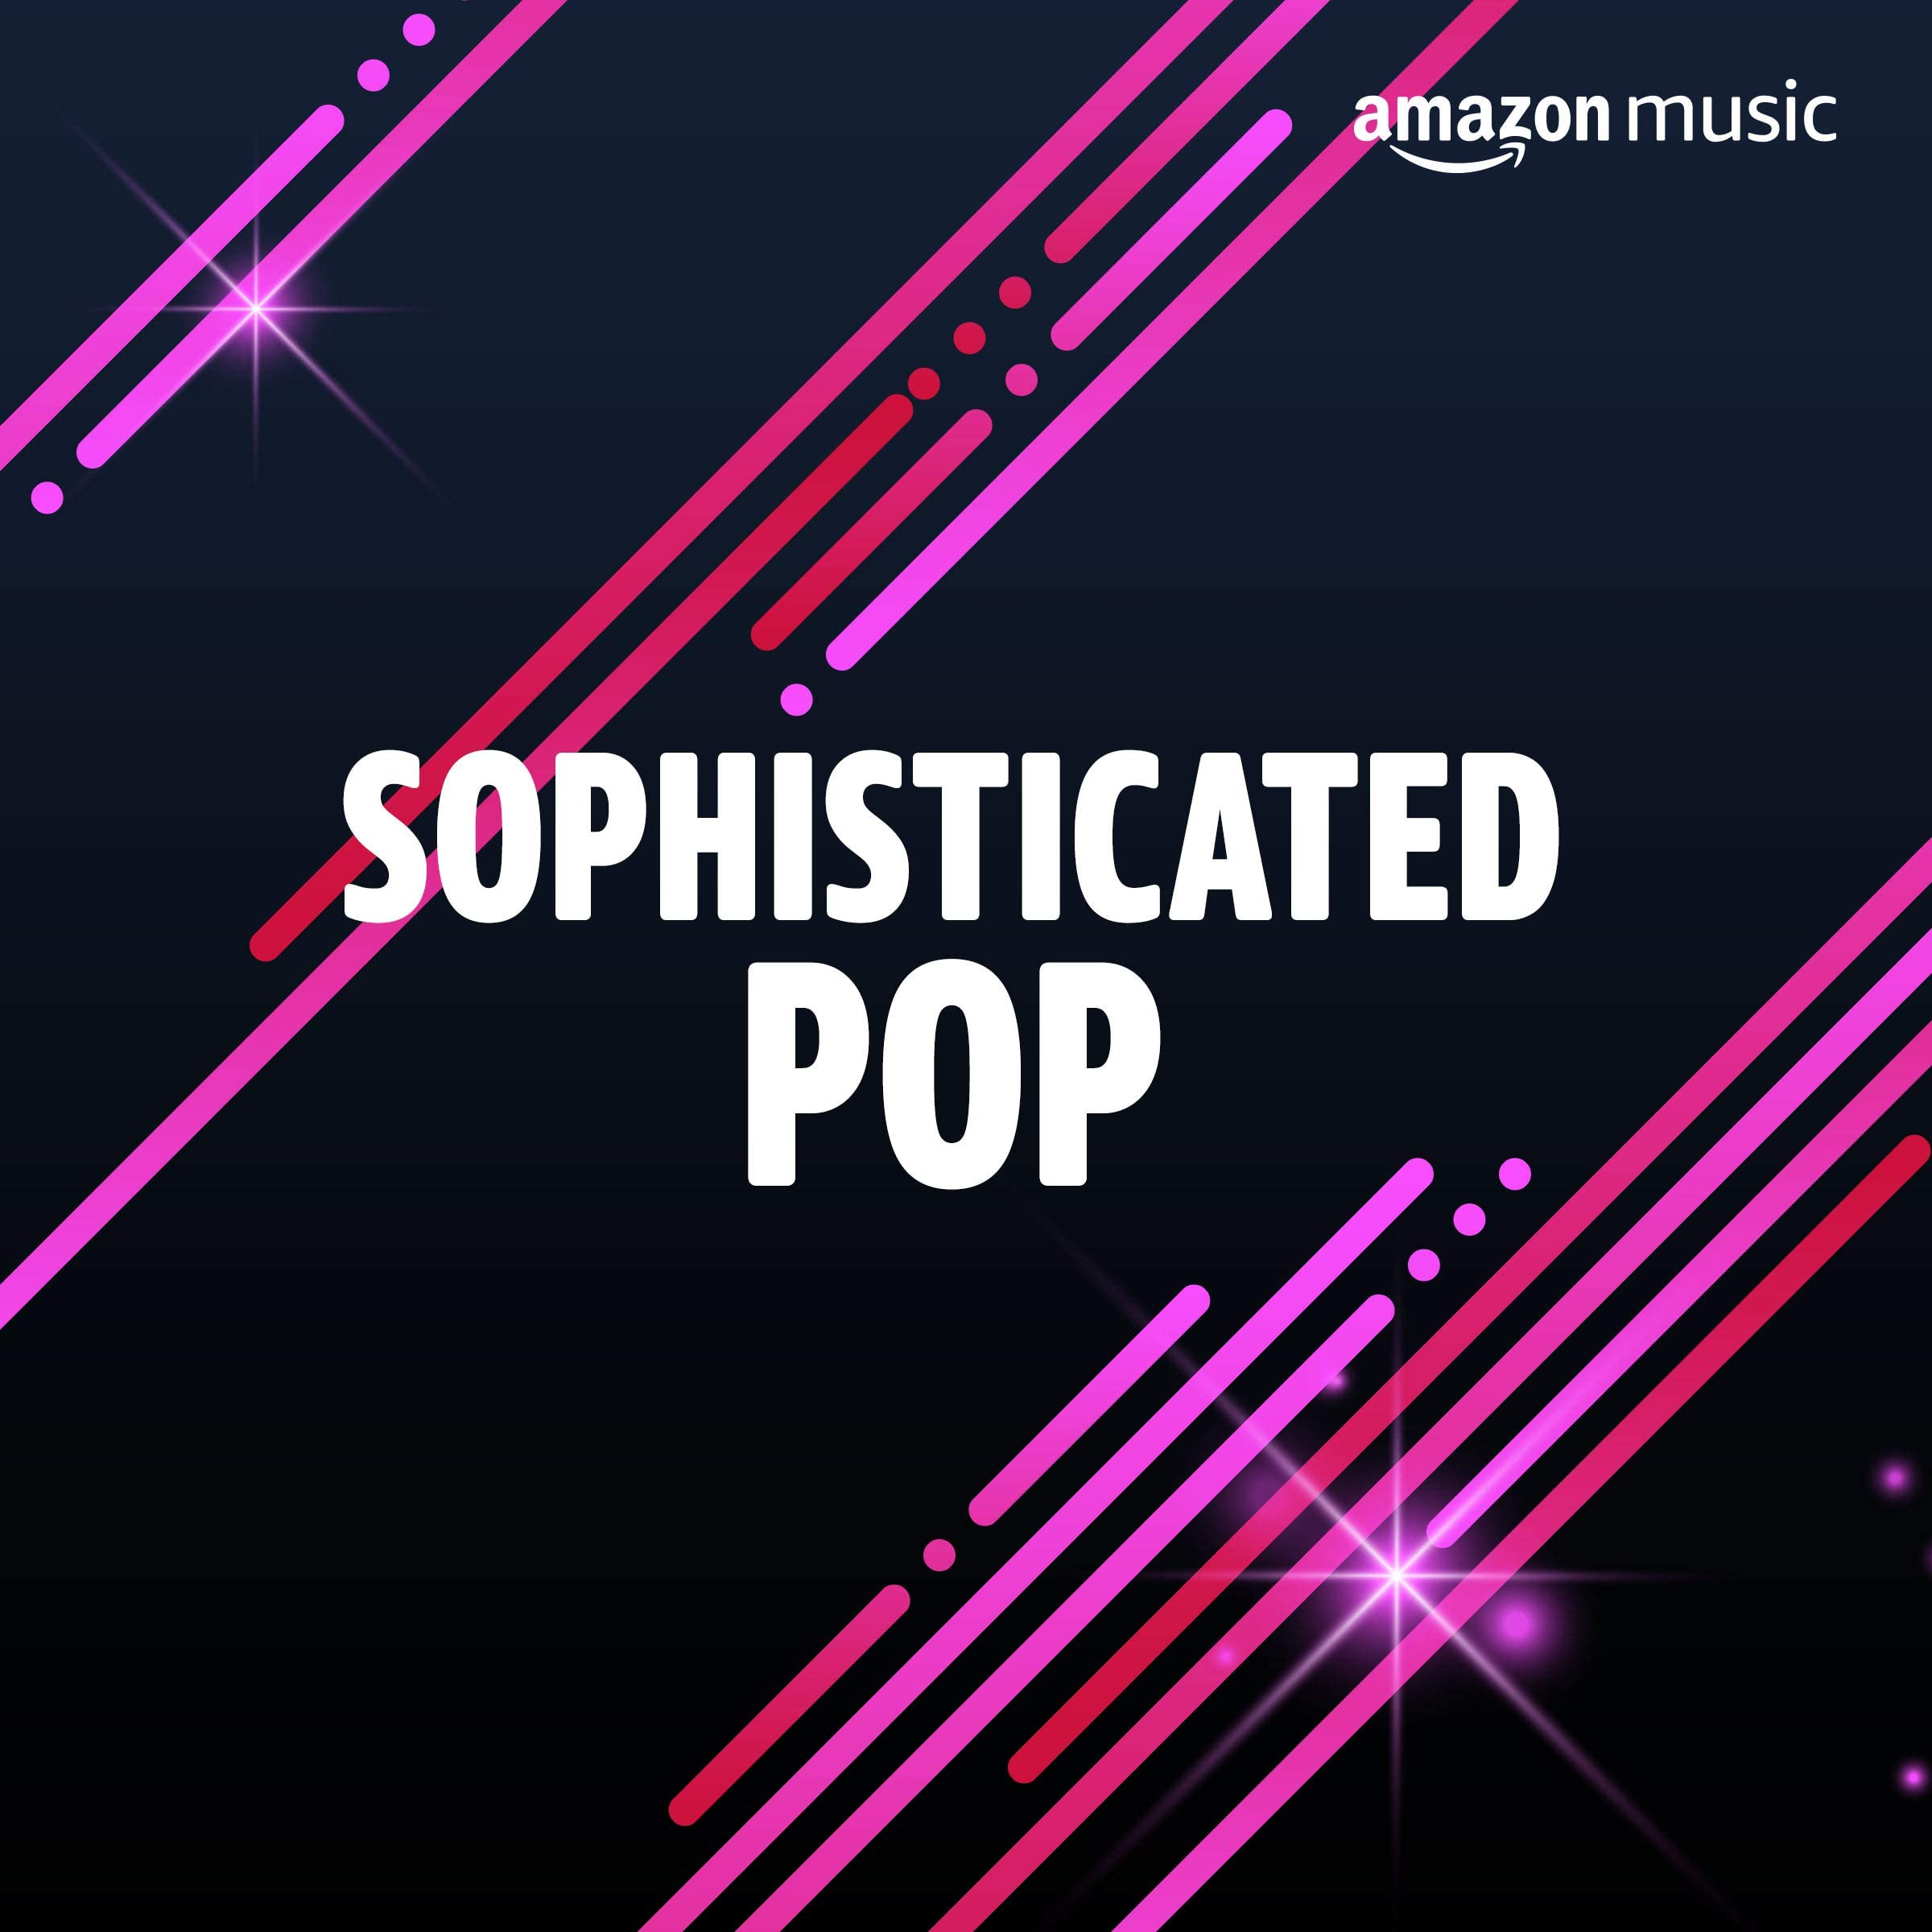 Sophisticated Pop